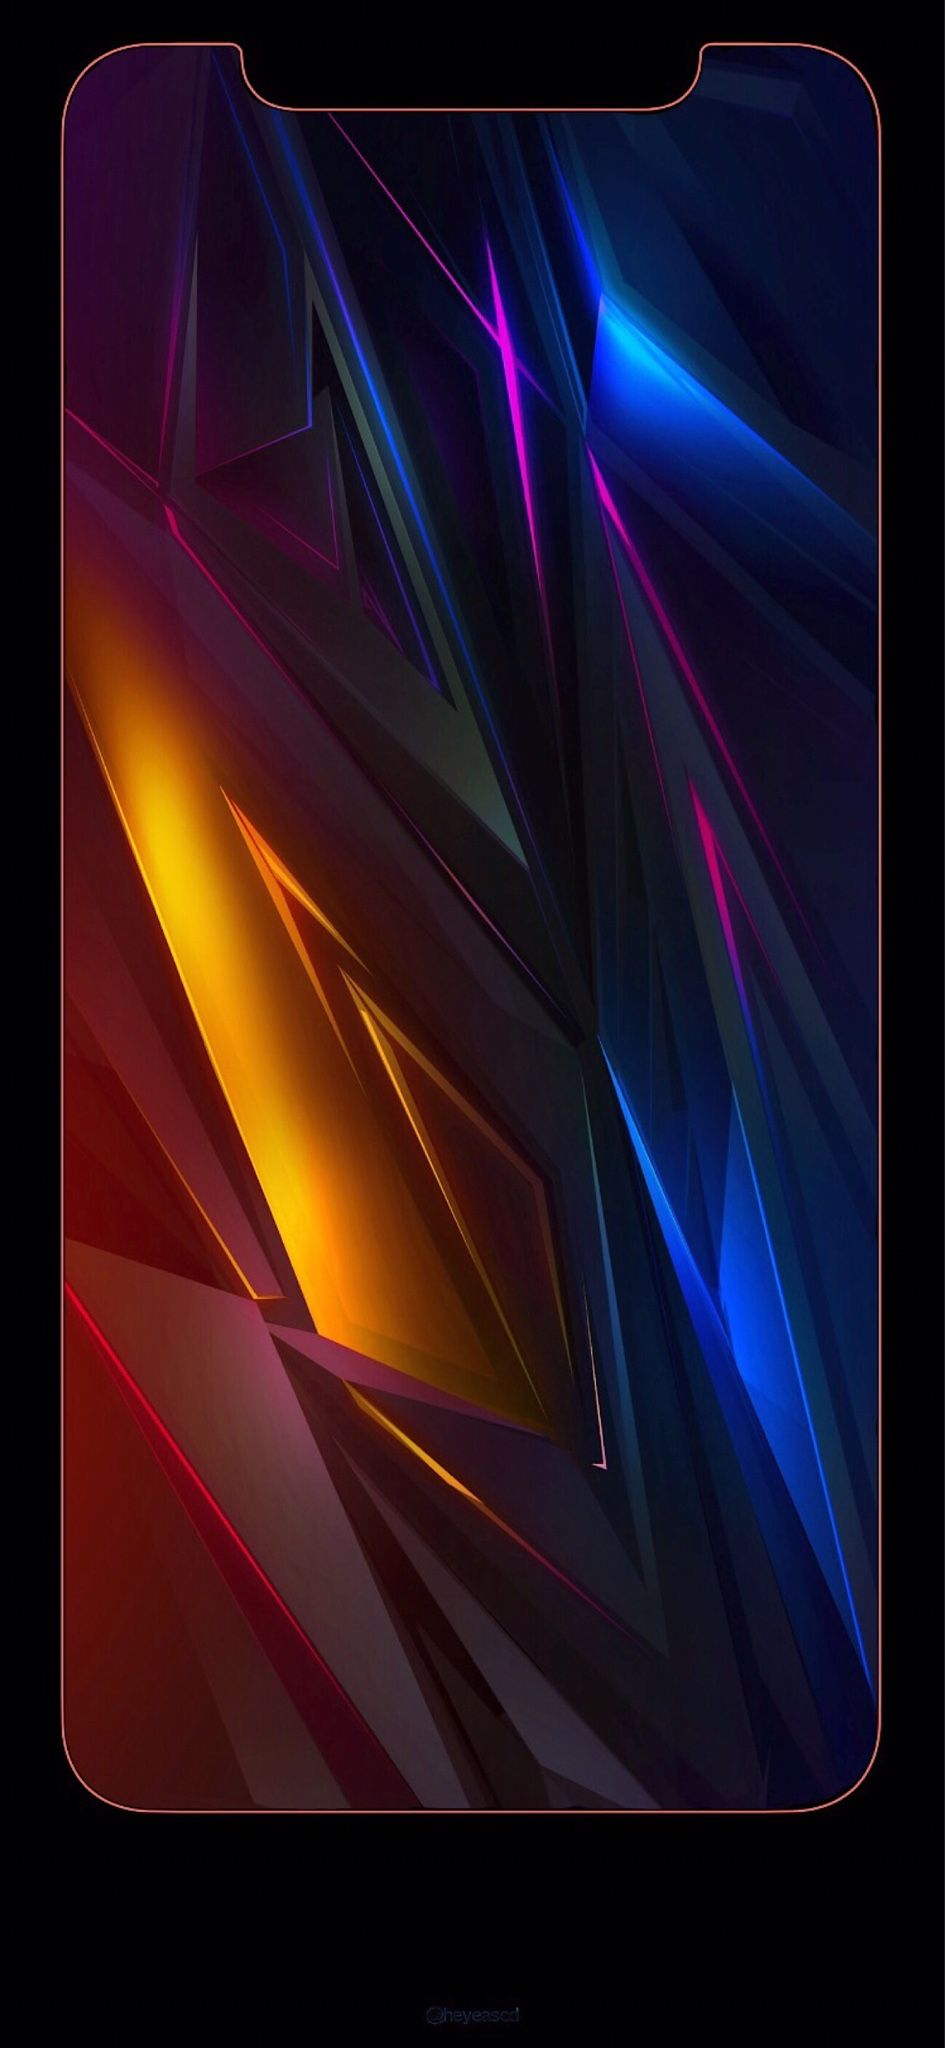 The iPhone X/Xs Wallpaper Thread Page 56 iPhone, iPad